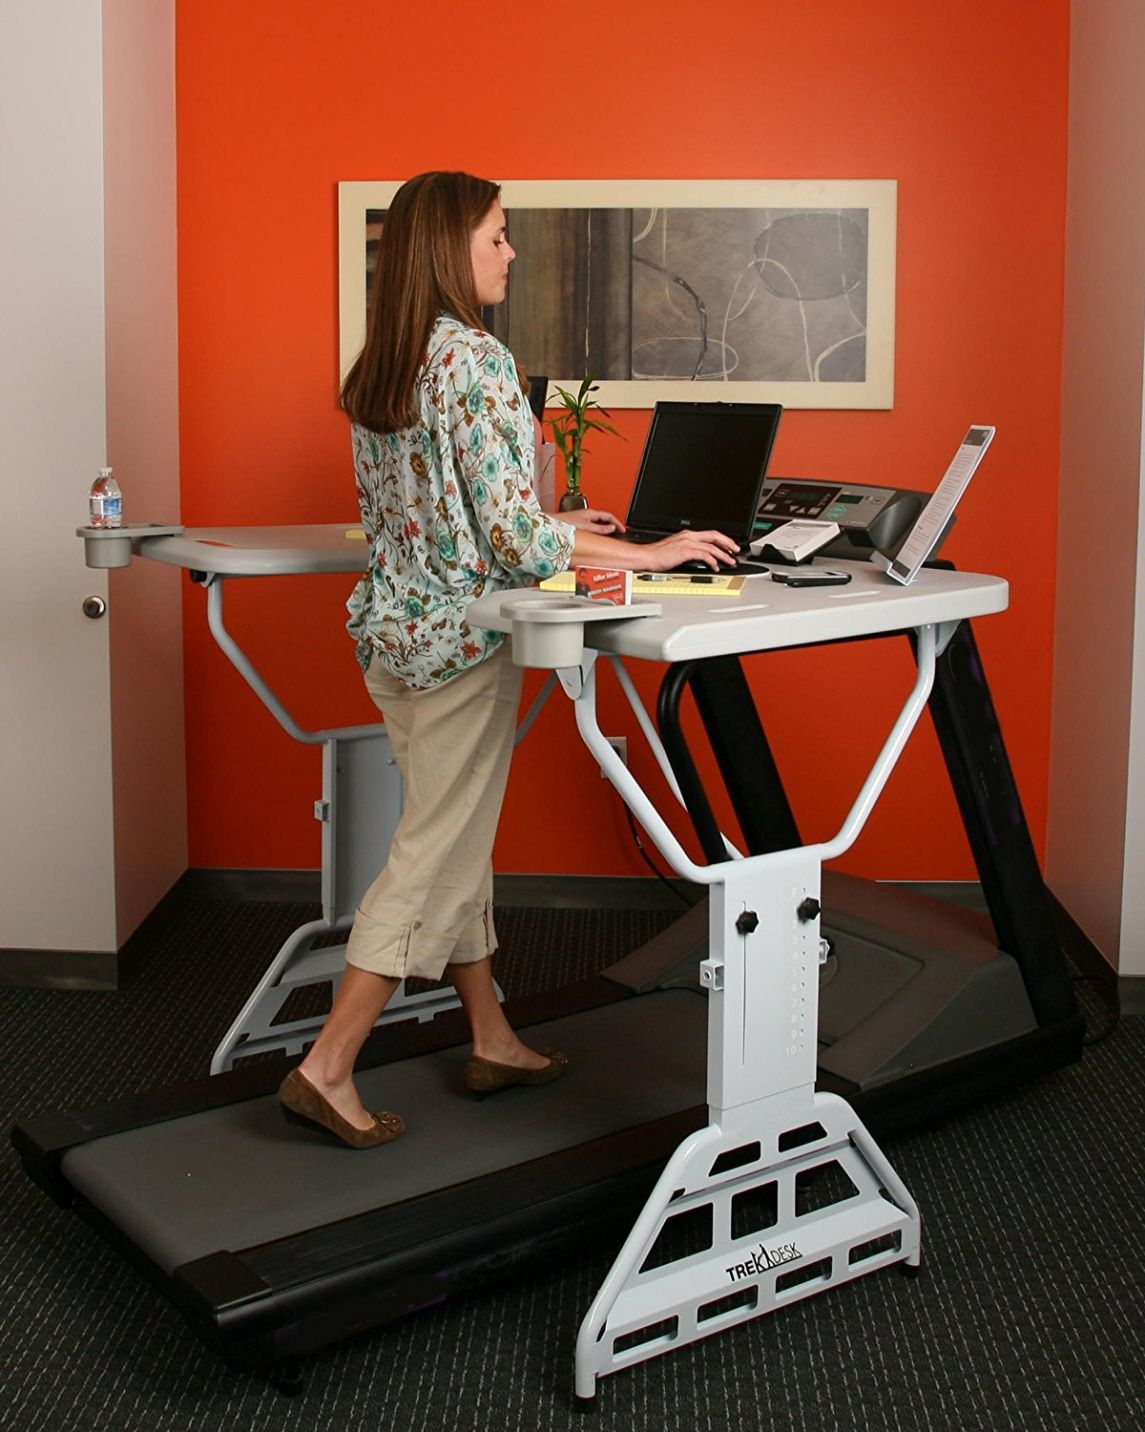 Executive Treadmill Desk Home Office Furniture Images